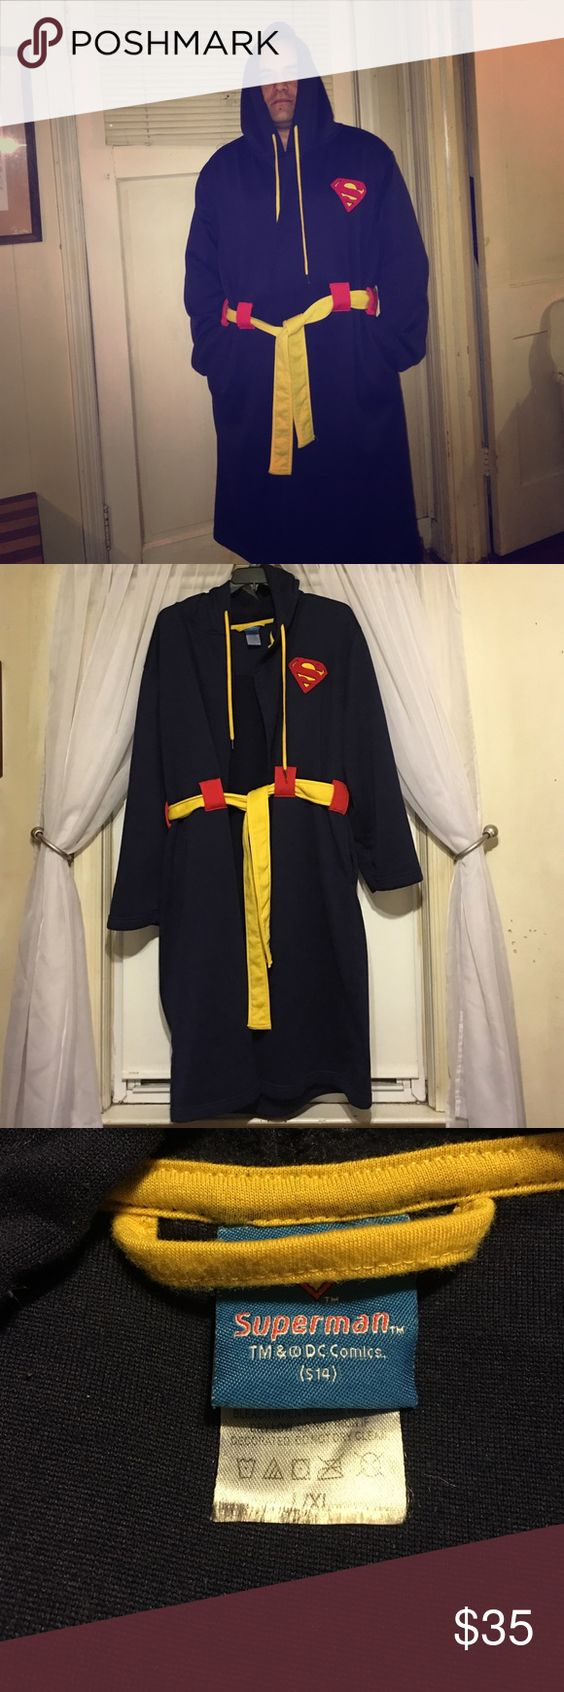 """Superman Robe If he goes crazy; I'll still call him Superman. Seriously; who doesn't want to alienate the neighbors in their Superman robe?!?! Don't miss this one. Whether you're pumpkin the RV septic into the sewer line or grocery shopping at Walmart; you've gotta have it! 44 1/2"""" long plus you can totally draw the hood up and play """"Kenny from South Park""""! Let's be real; y'all know y'all want to embarrass your teenagers and in-laws in this sweetness. Act fast; the holidays are creeping up…"""